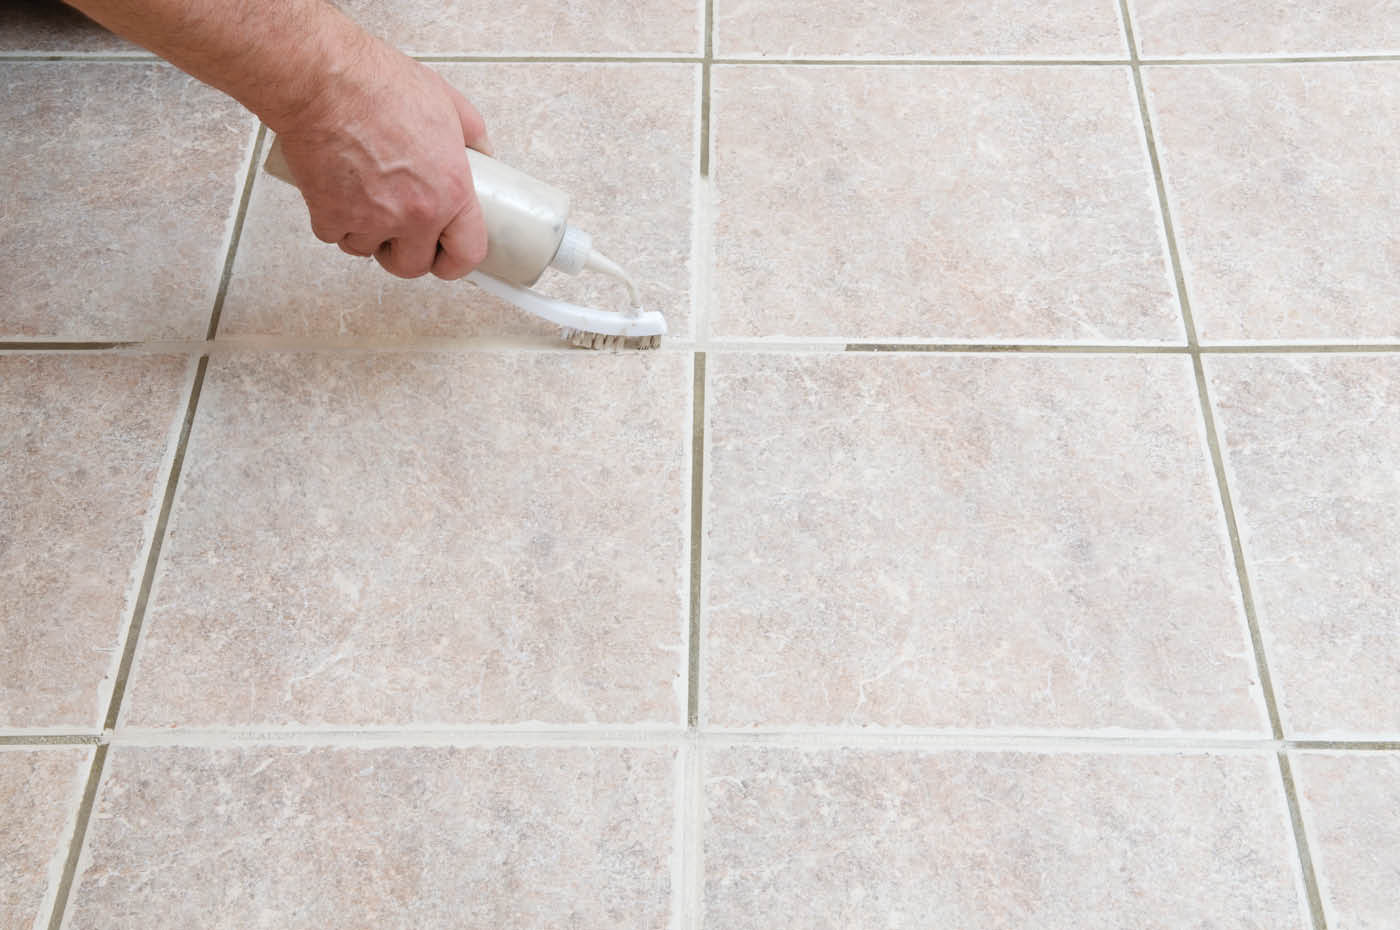 Simple routines to cleaning ceramic tile floors homesfeed cleaning ceramic tile floors grout cleaning with toothbrush for clean ceramic tile floors dailygadgetfo Images